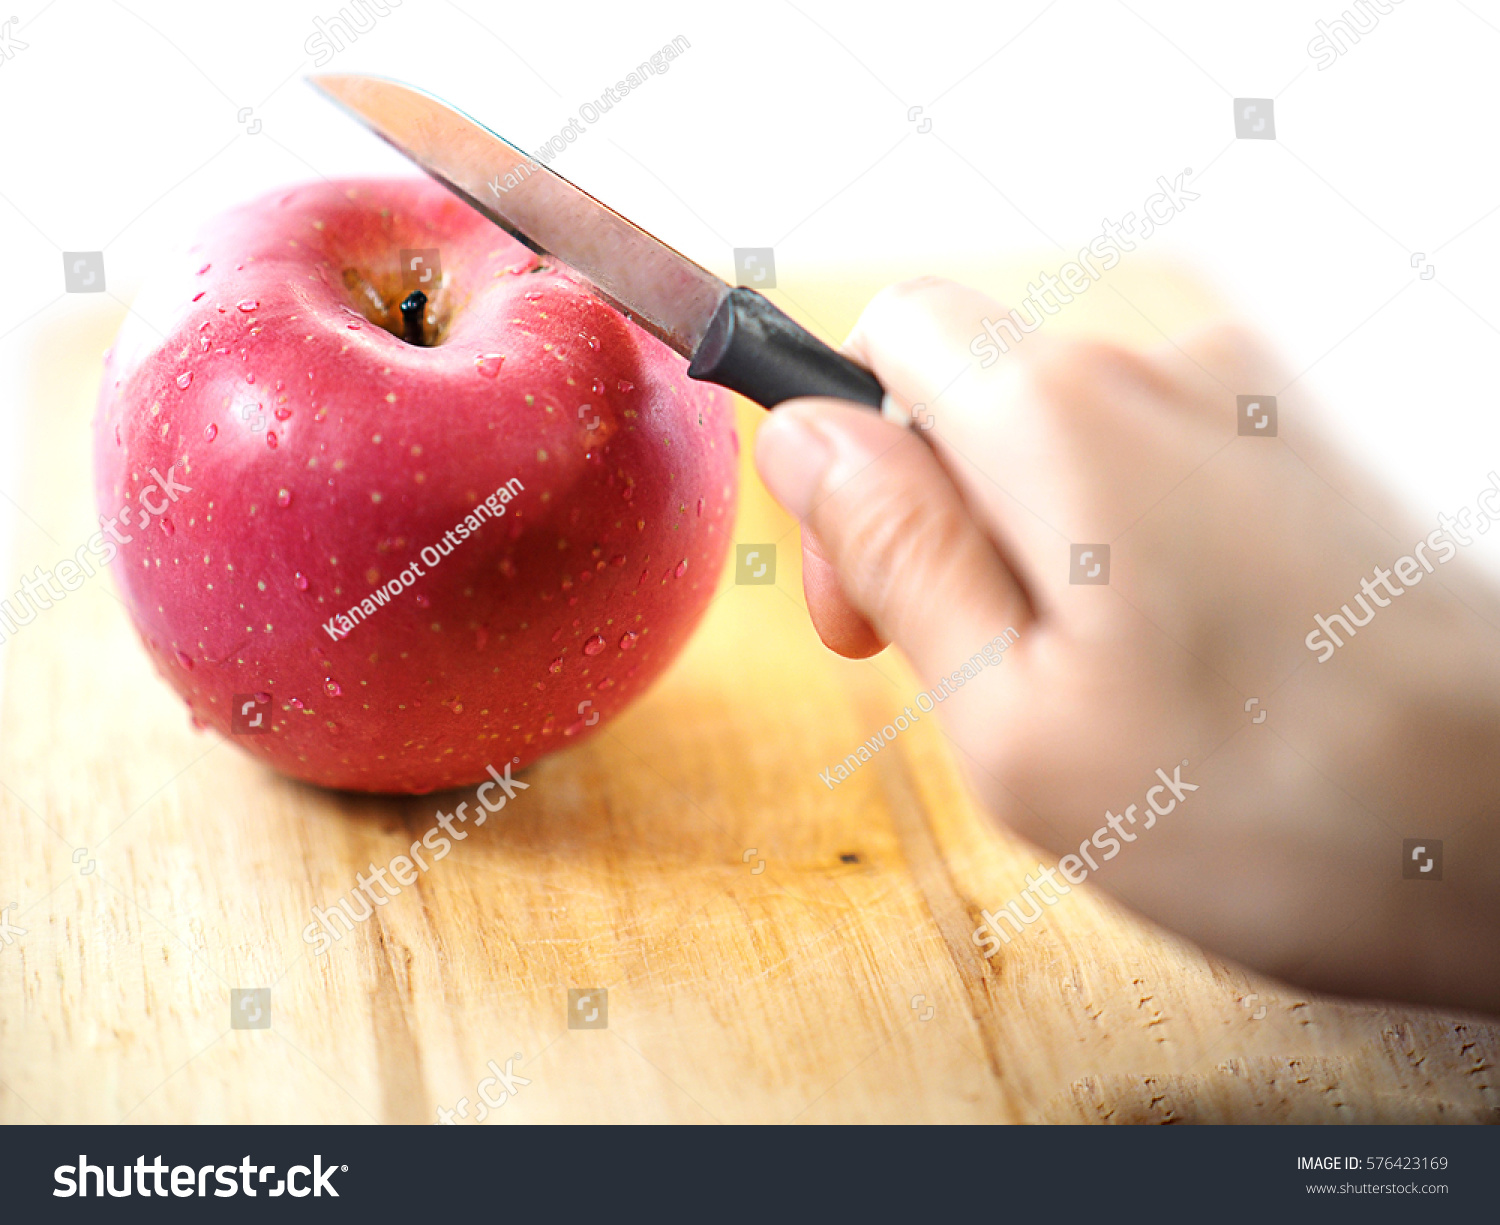 how to cut an apple with a knife